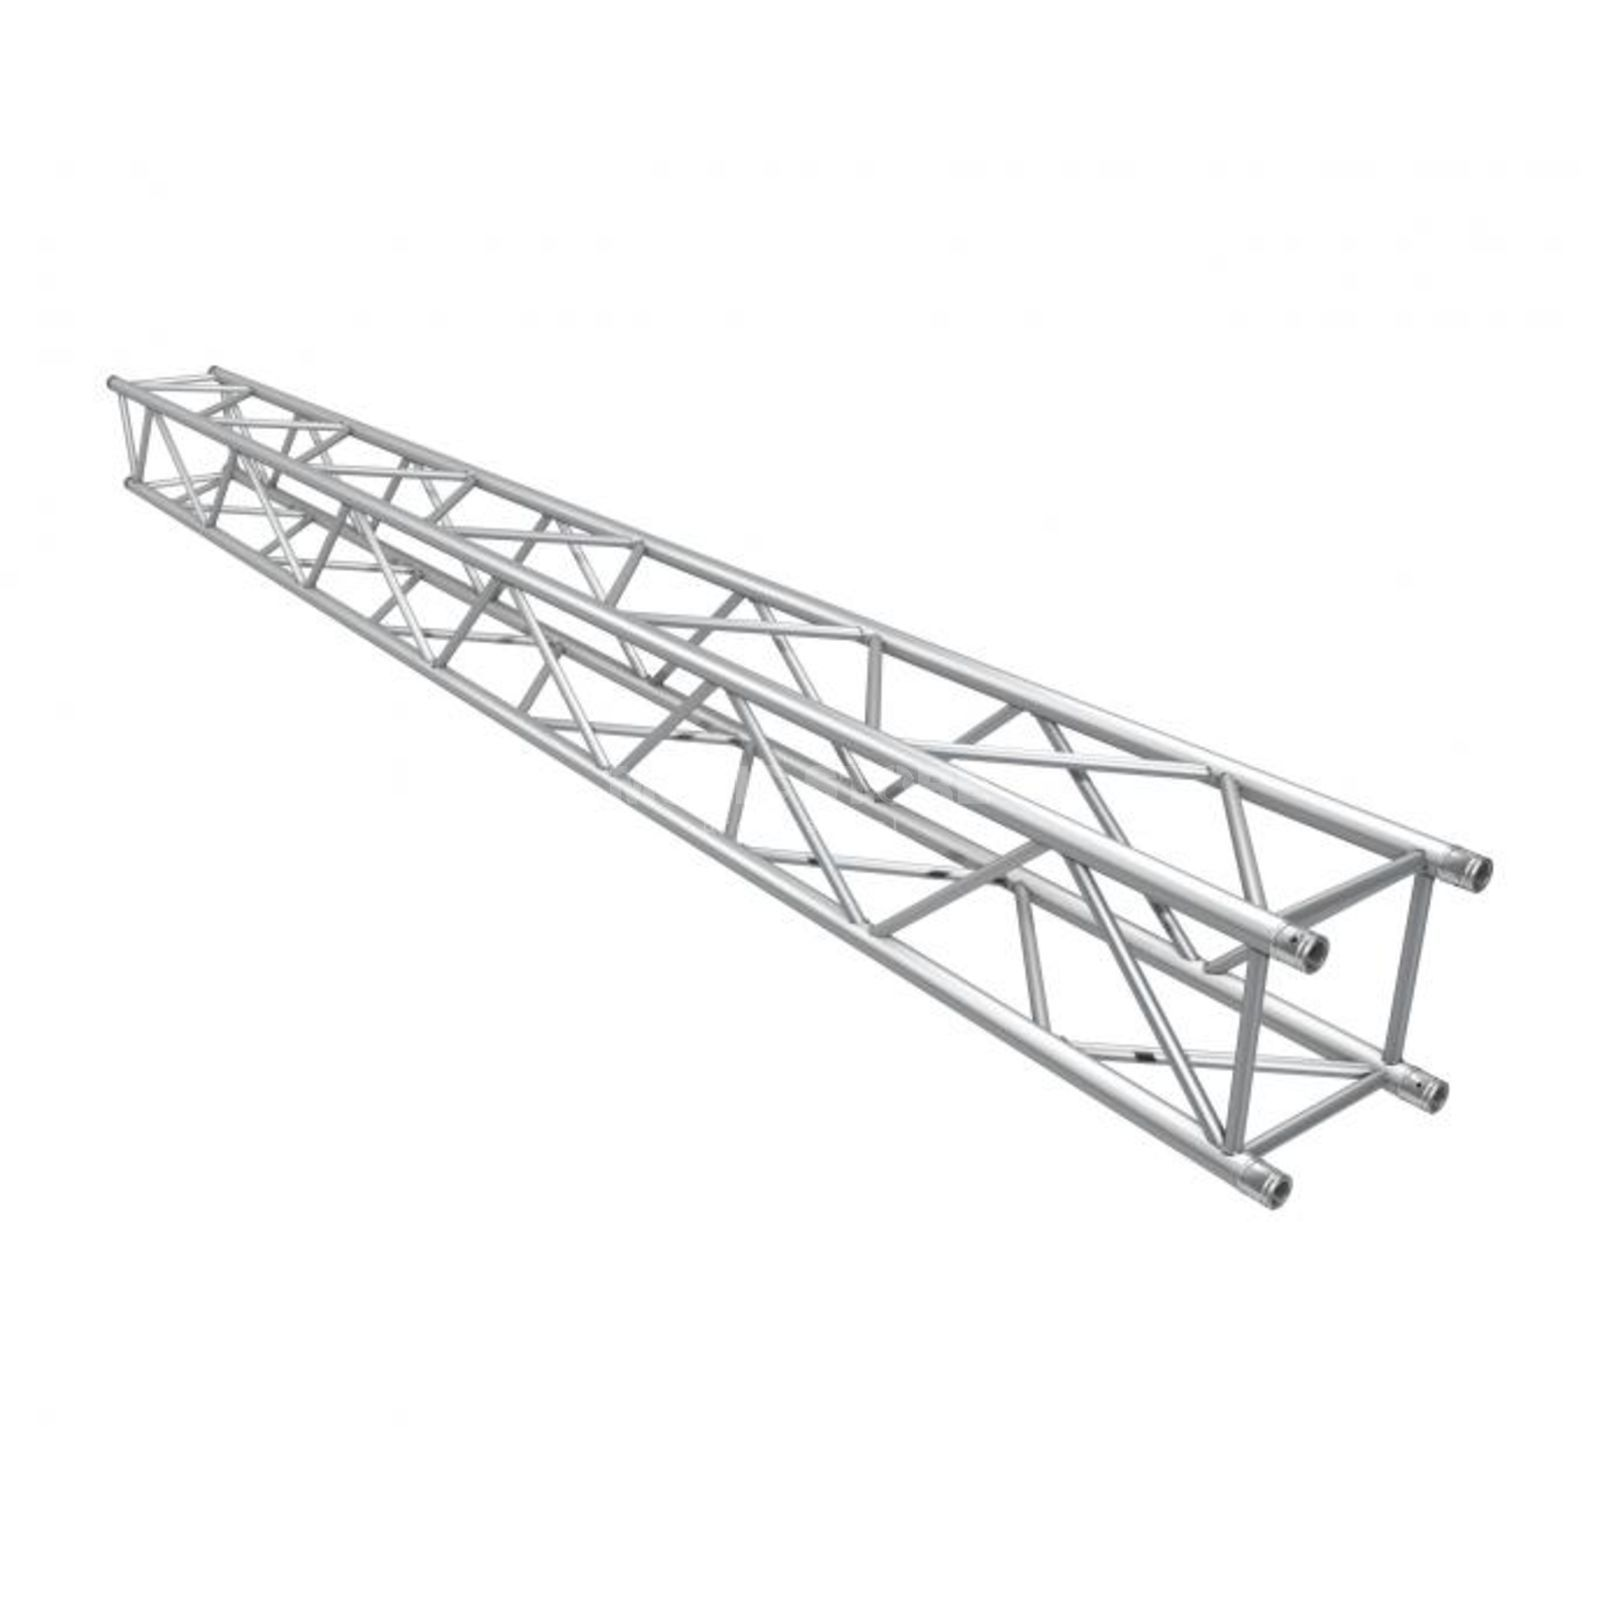 Global Truss F44 500cm incl. spigot Productafbeelding